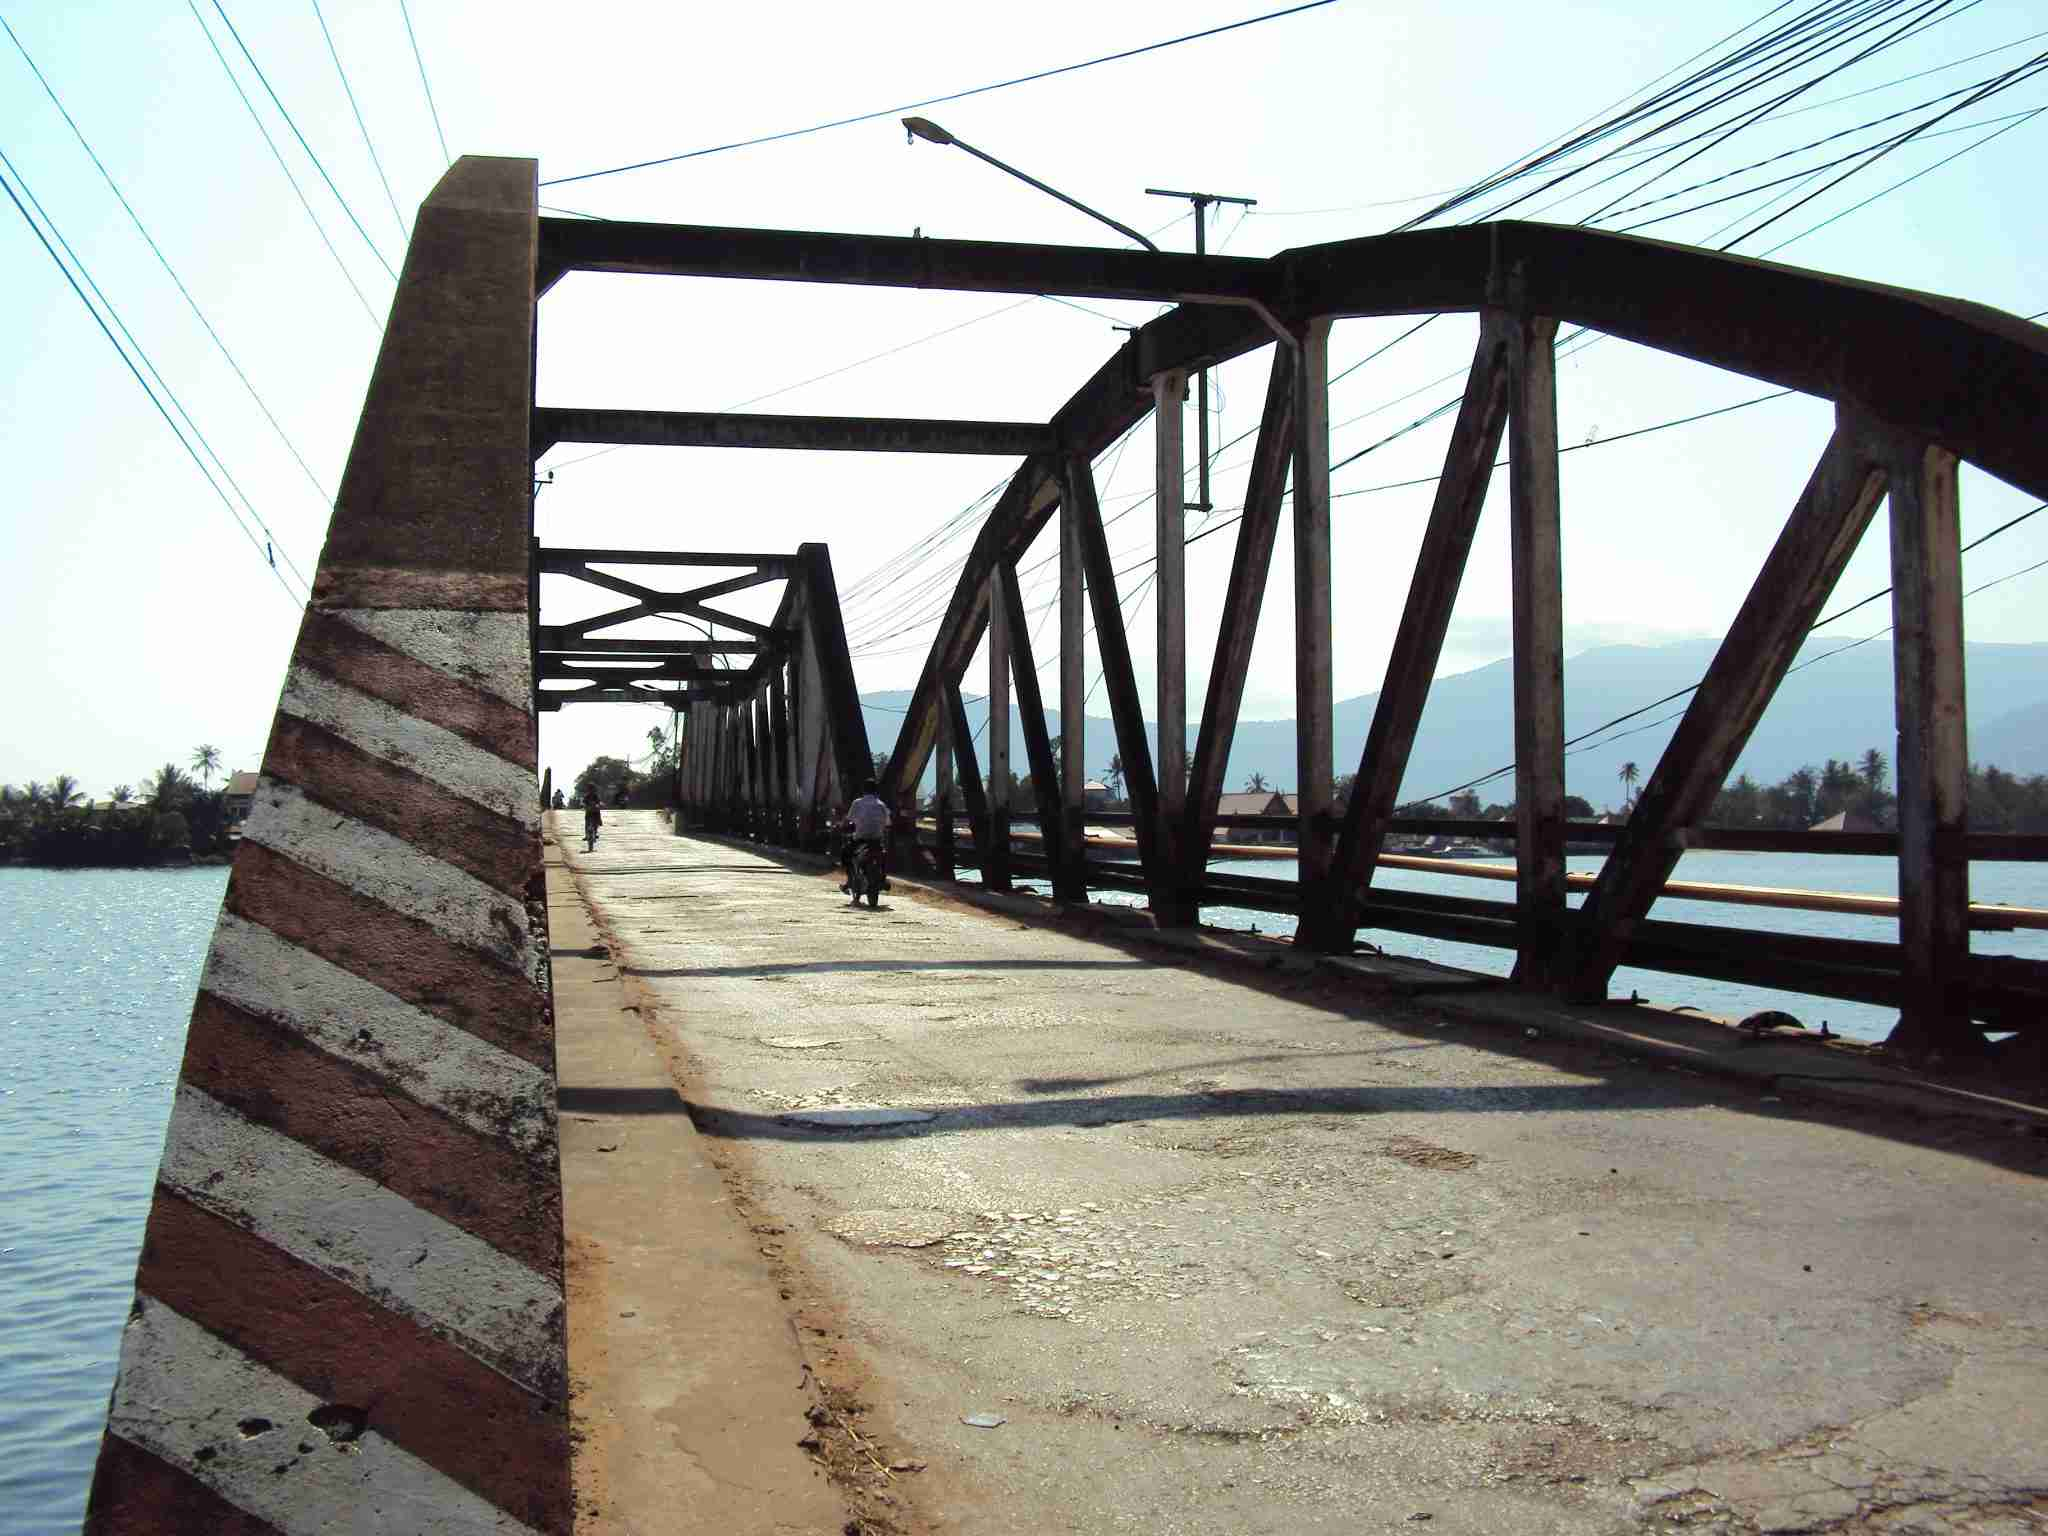 A bridge in great danger of collapse